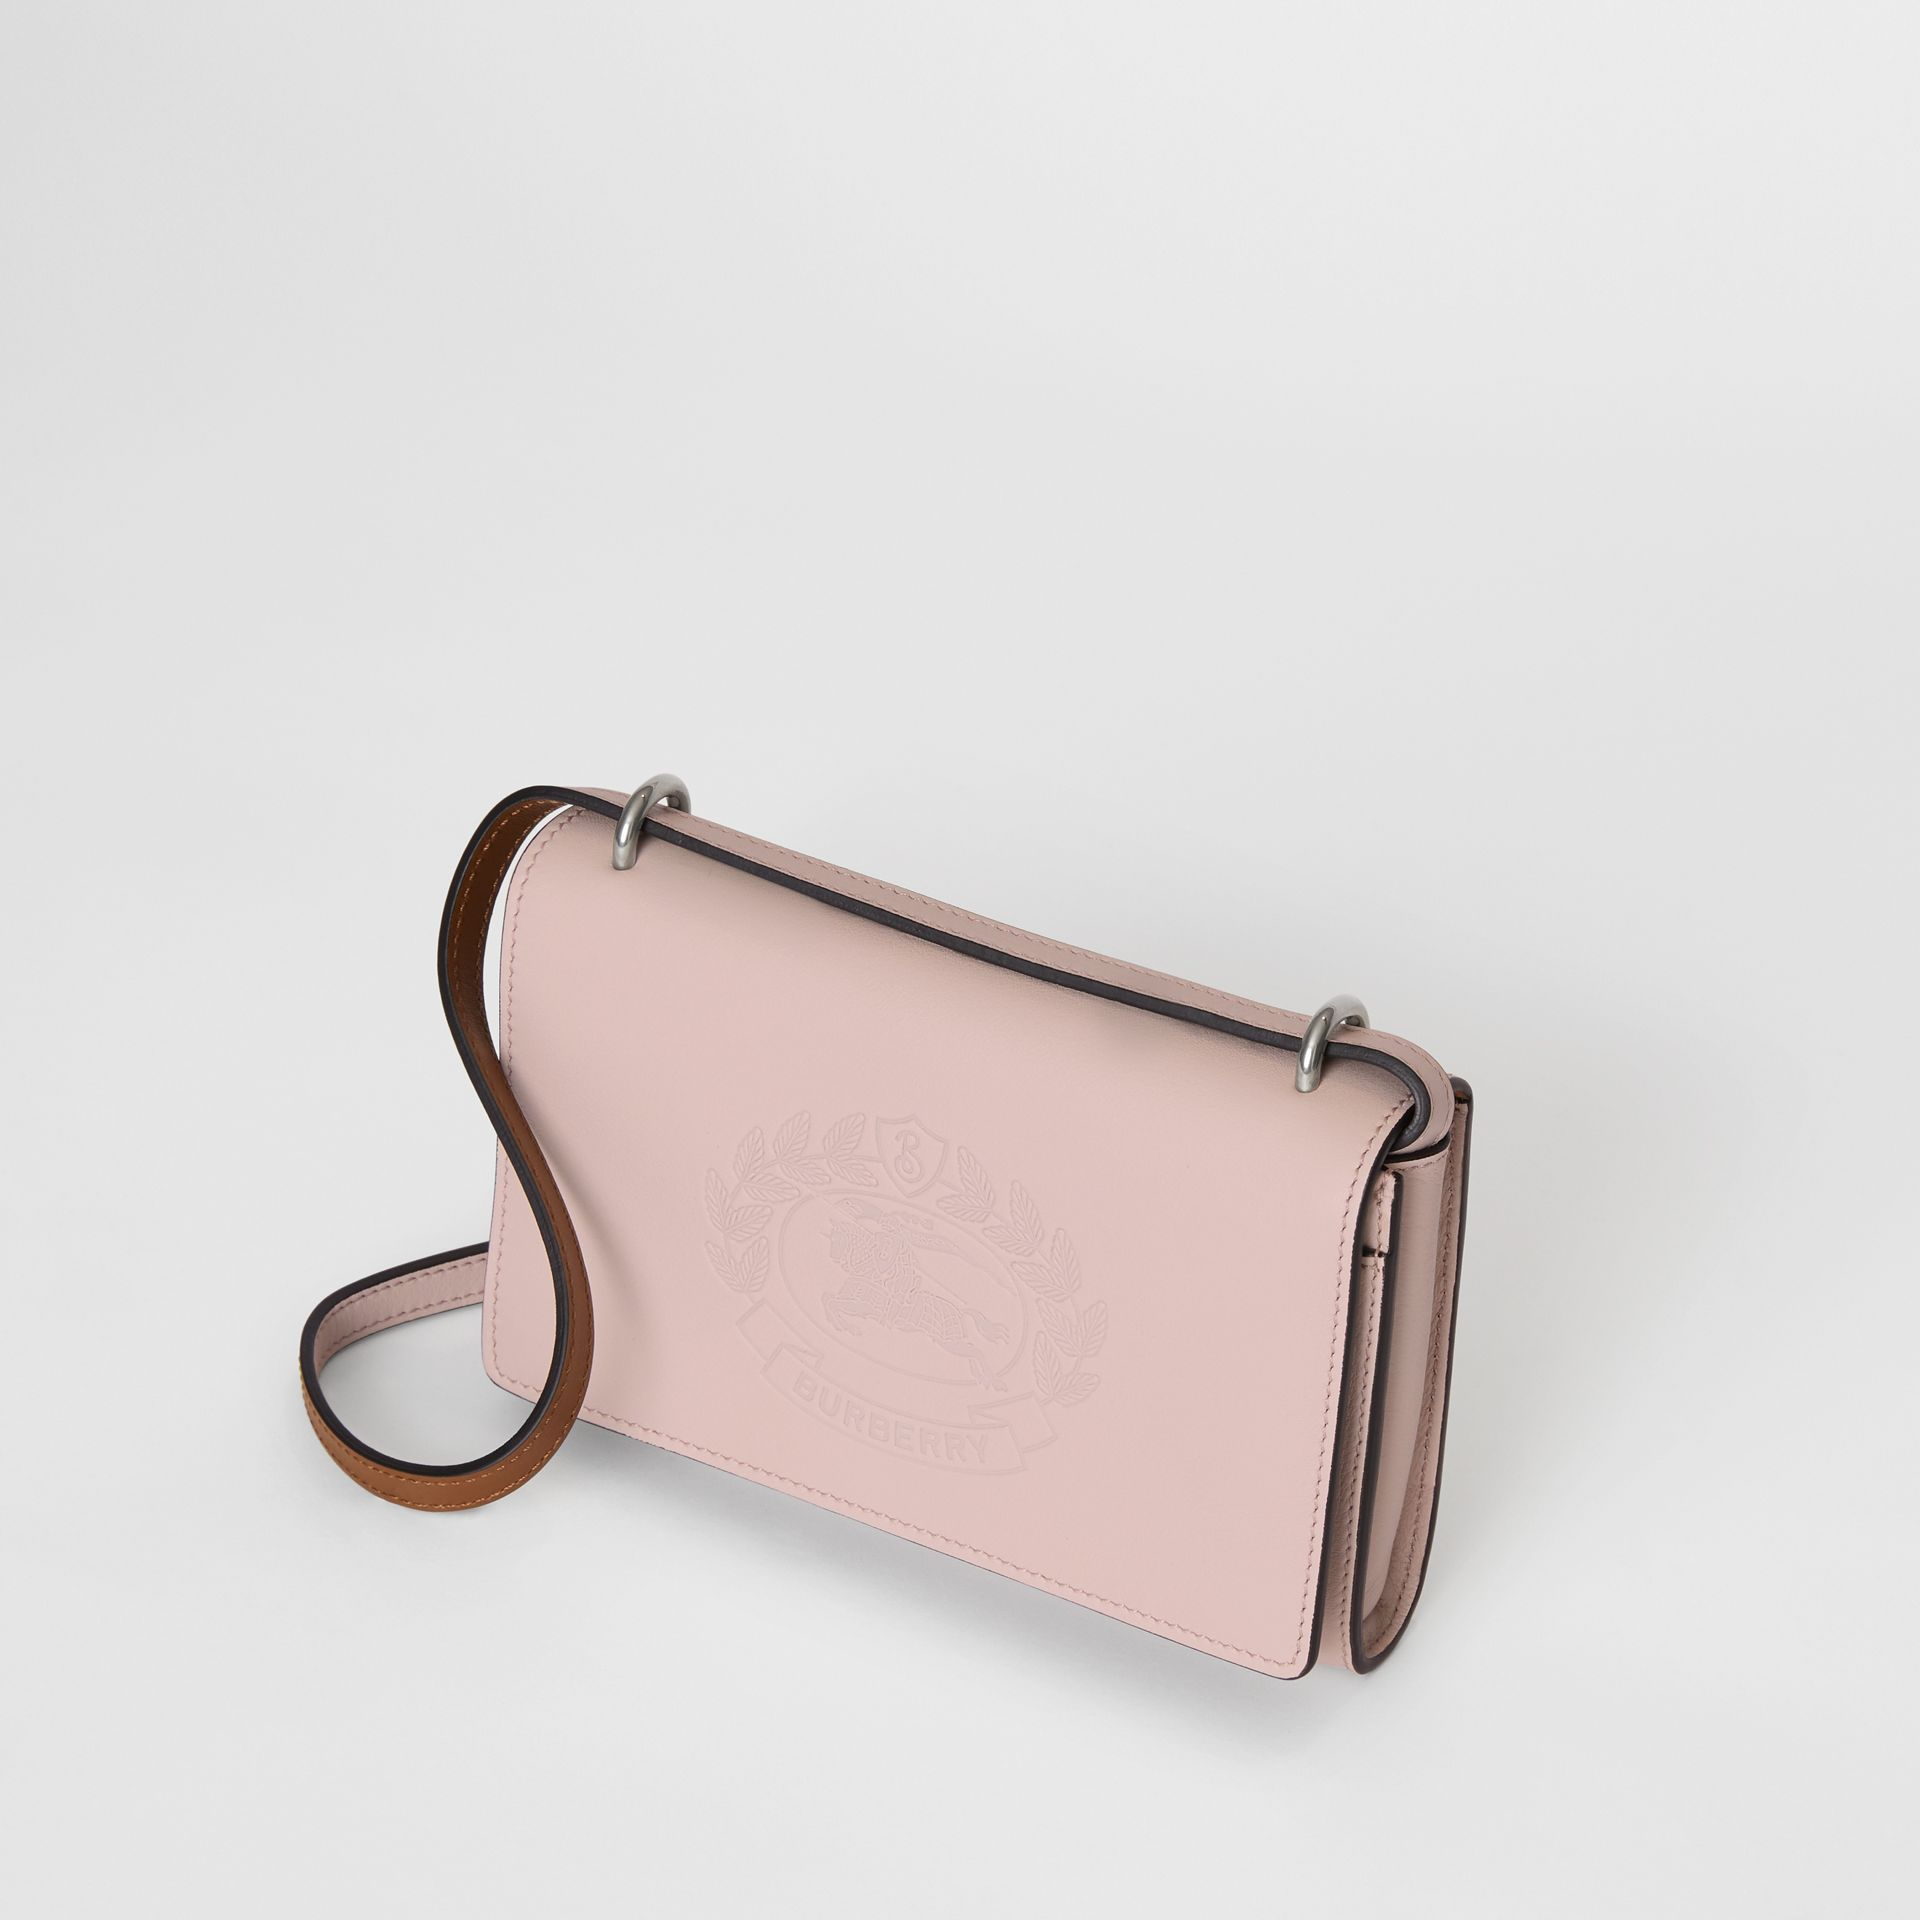 Embossed Crest Leather Wallet with Detachable Strap in Chalk Pink - Women | Burberry - gallery image 4